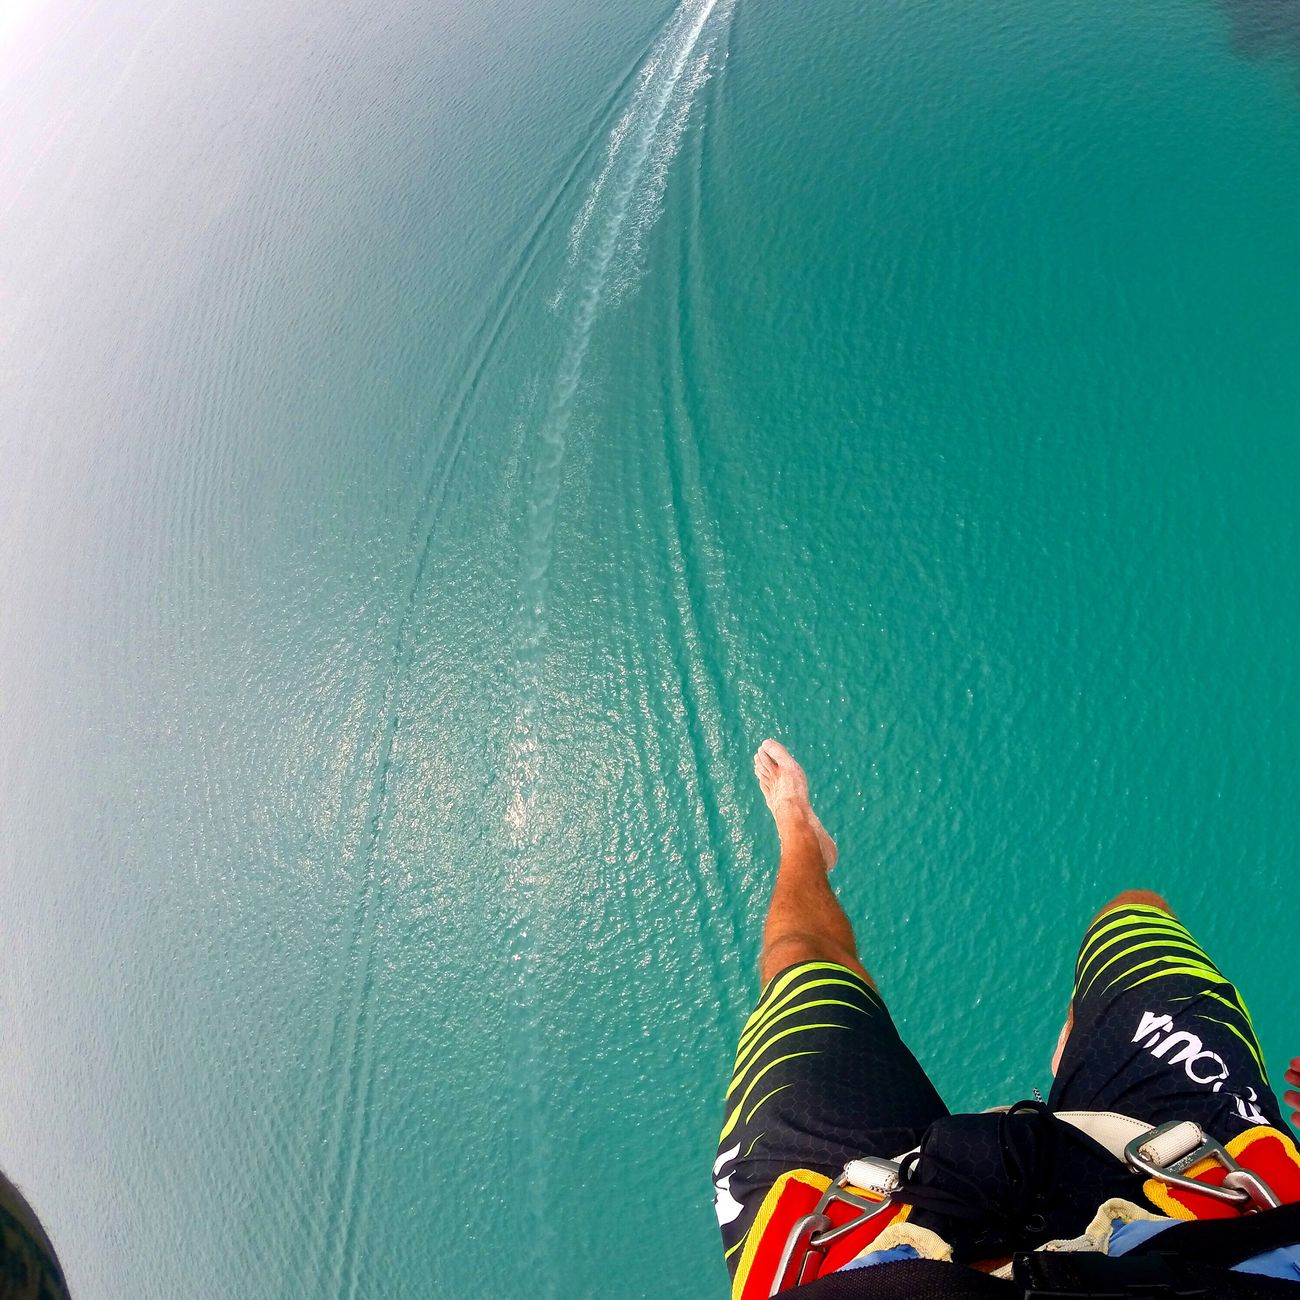 F L Y EXTREME 💪💣😎👊 Lifestyles Personal Perspective Travelphotography Sky Fly Rikyfreerider Gopro Goprooftheday Goprohero4 Goprohero HERO Gopromoment Goprophotography GoPro Hero3+ Goprouniverse